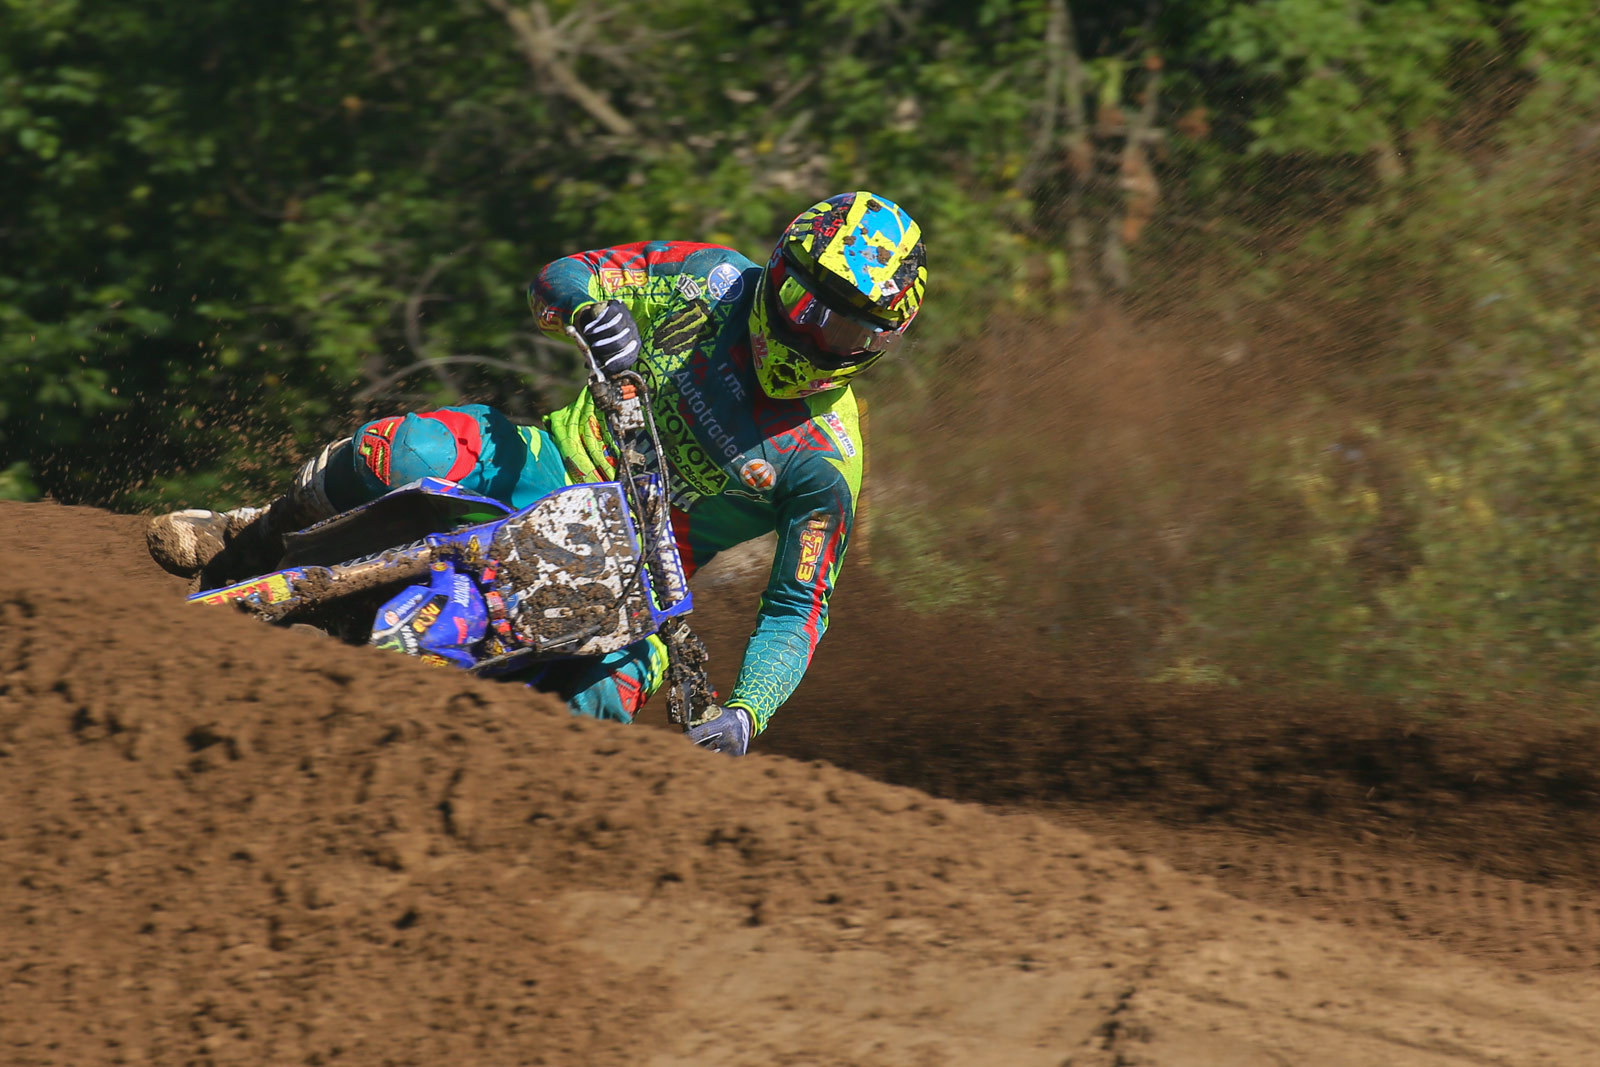 Weston Peick - Vital MX Pit Bits: Spring Creek - Motocross Pictures - Vital MX